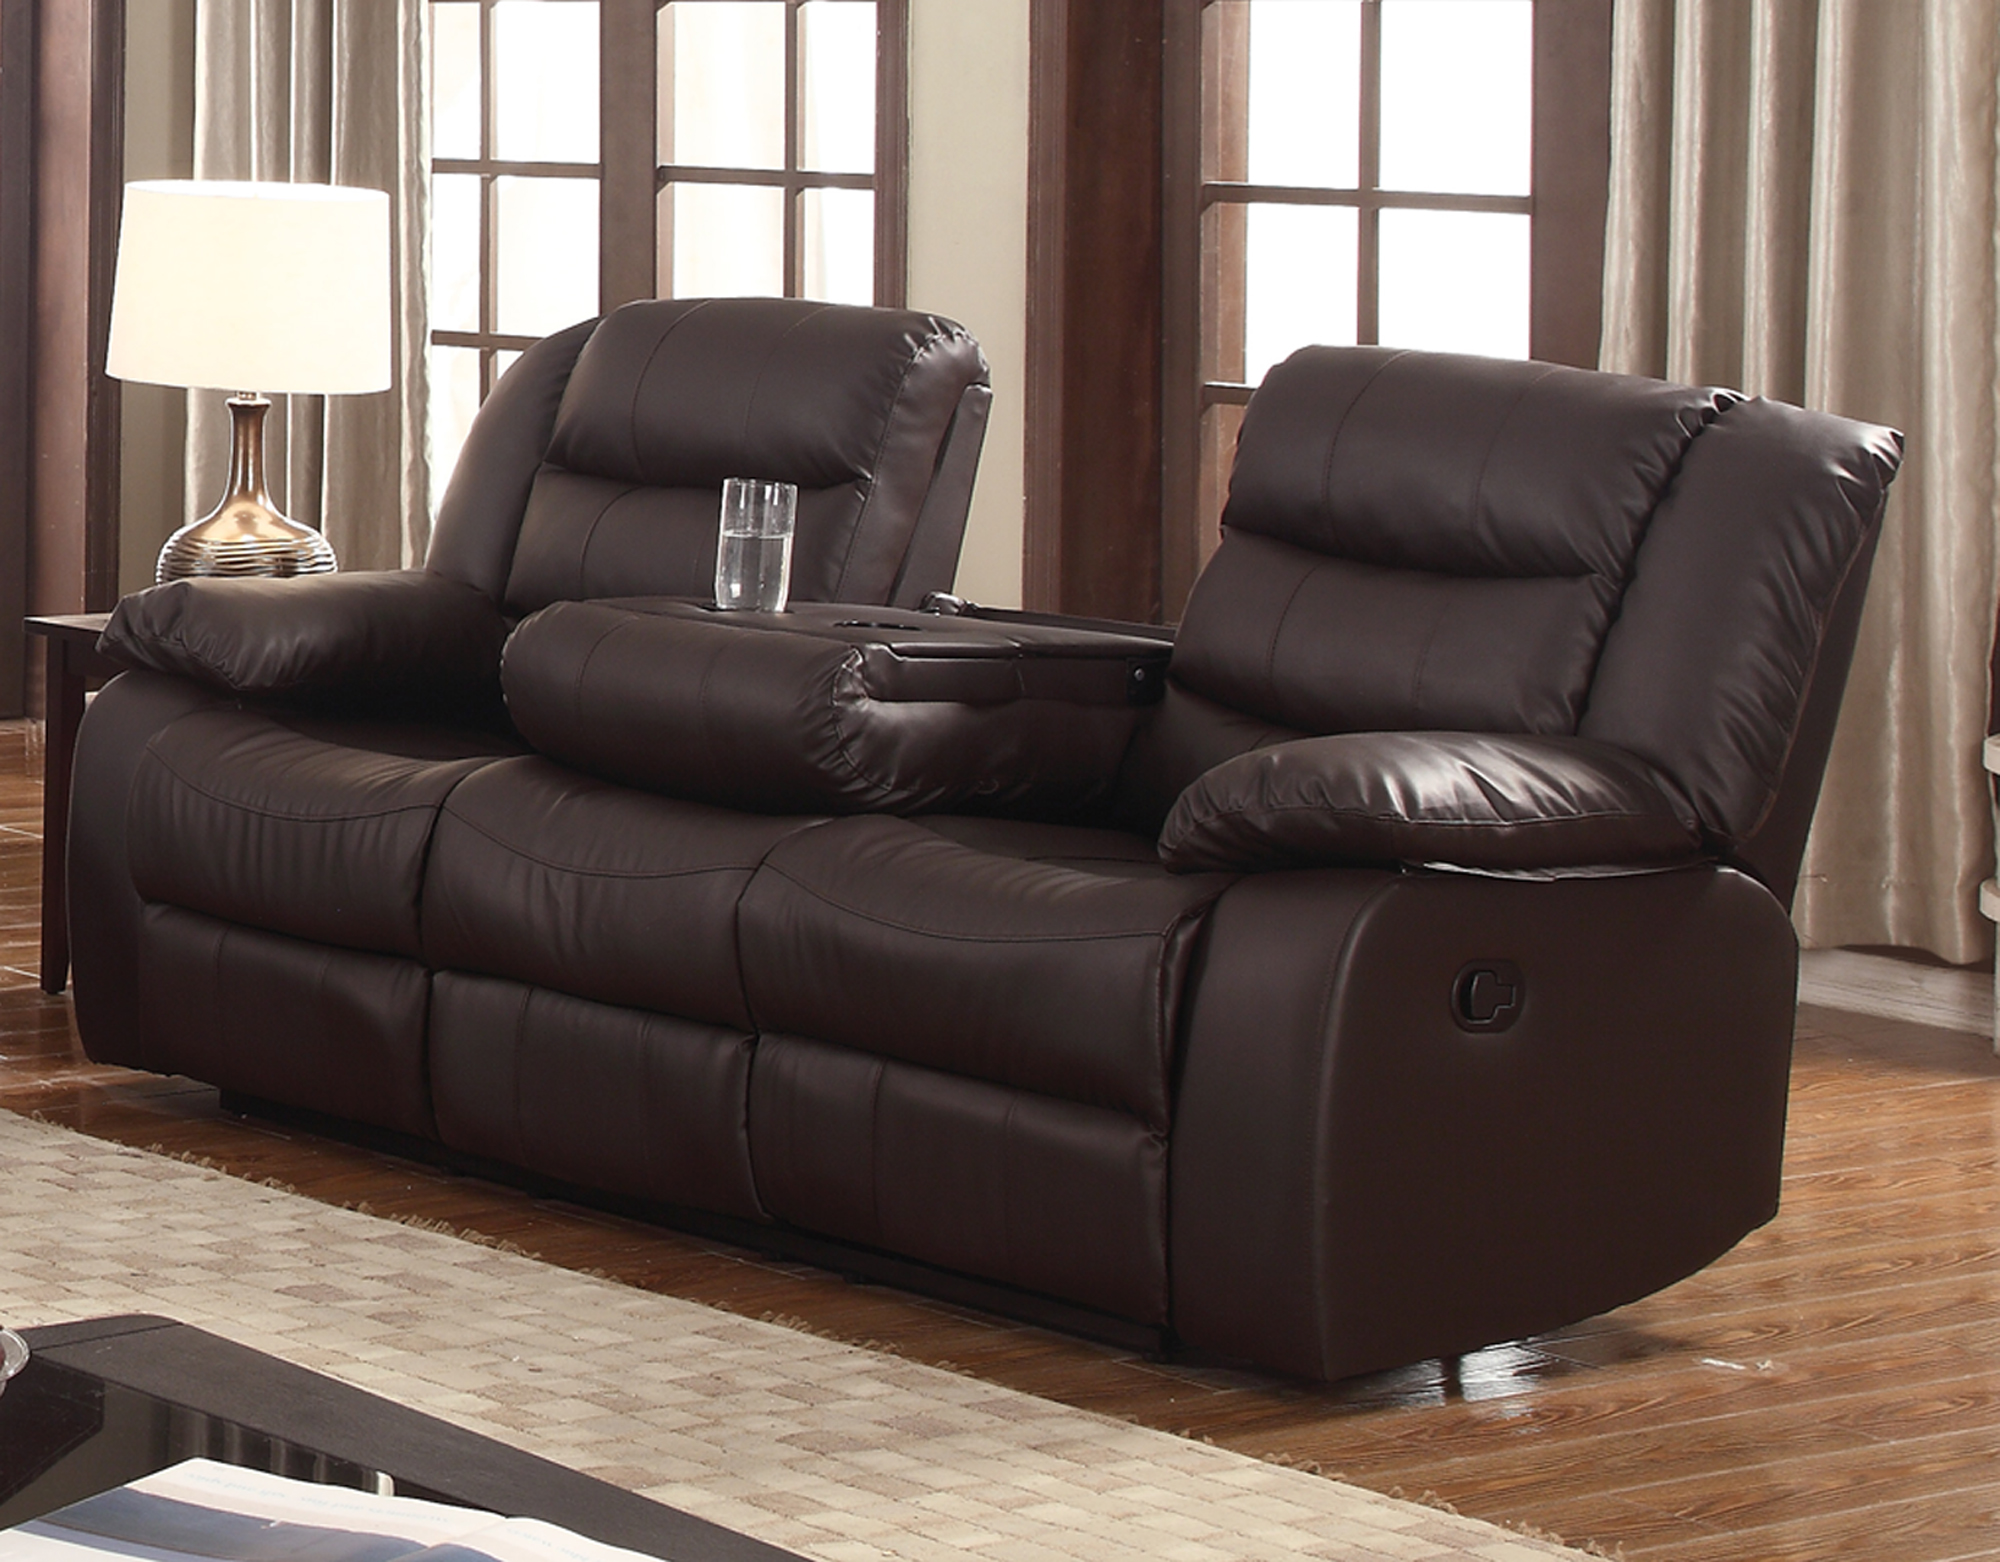 Layla Dark Brown Faux Leather Reclining Sofa With Drop Down Tea